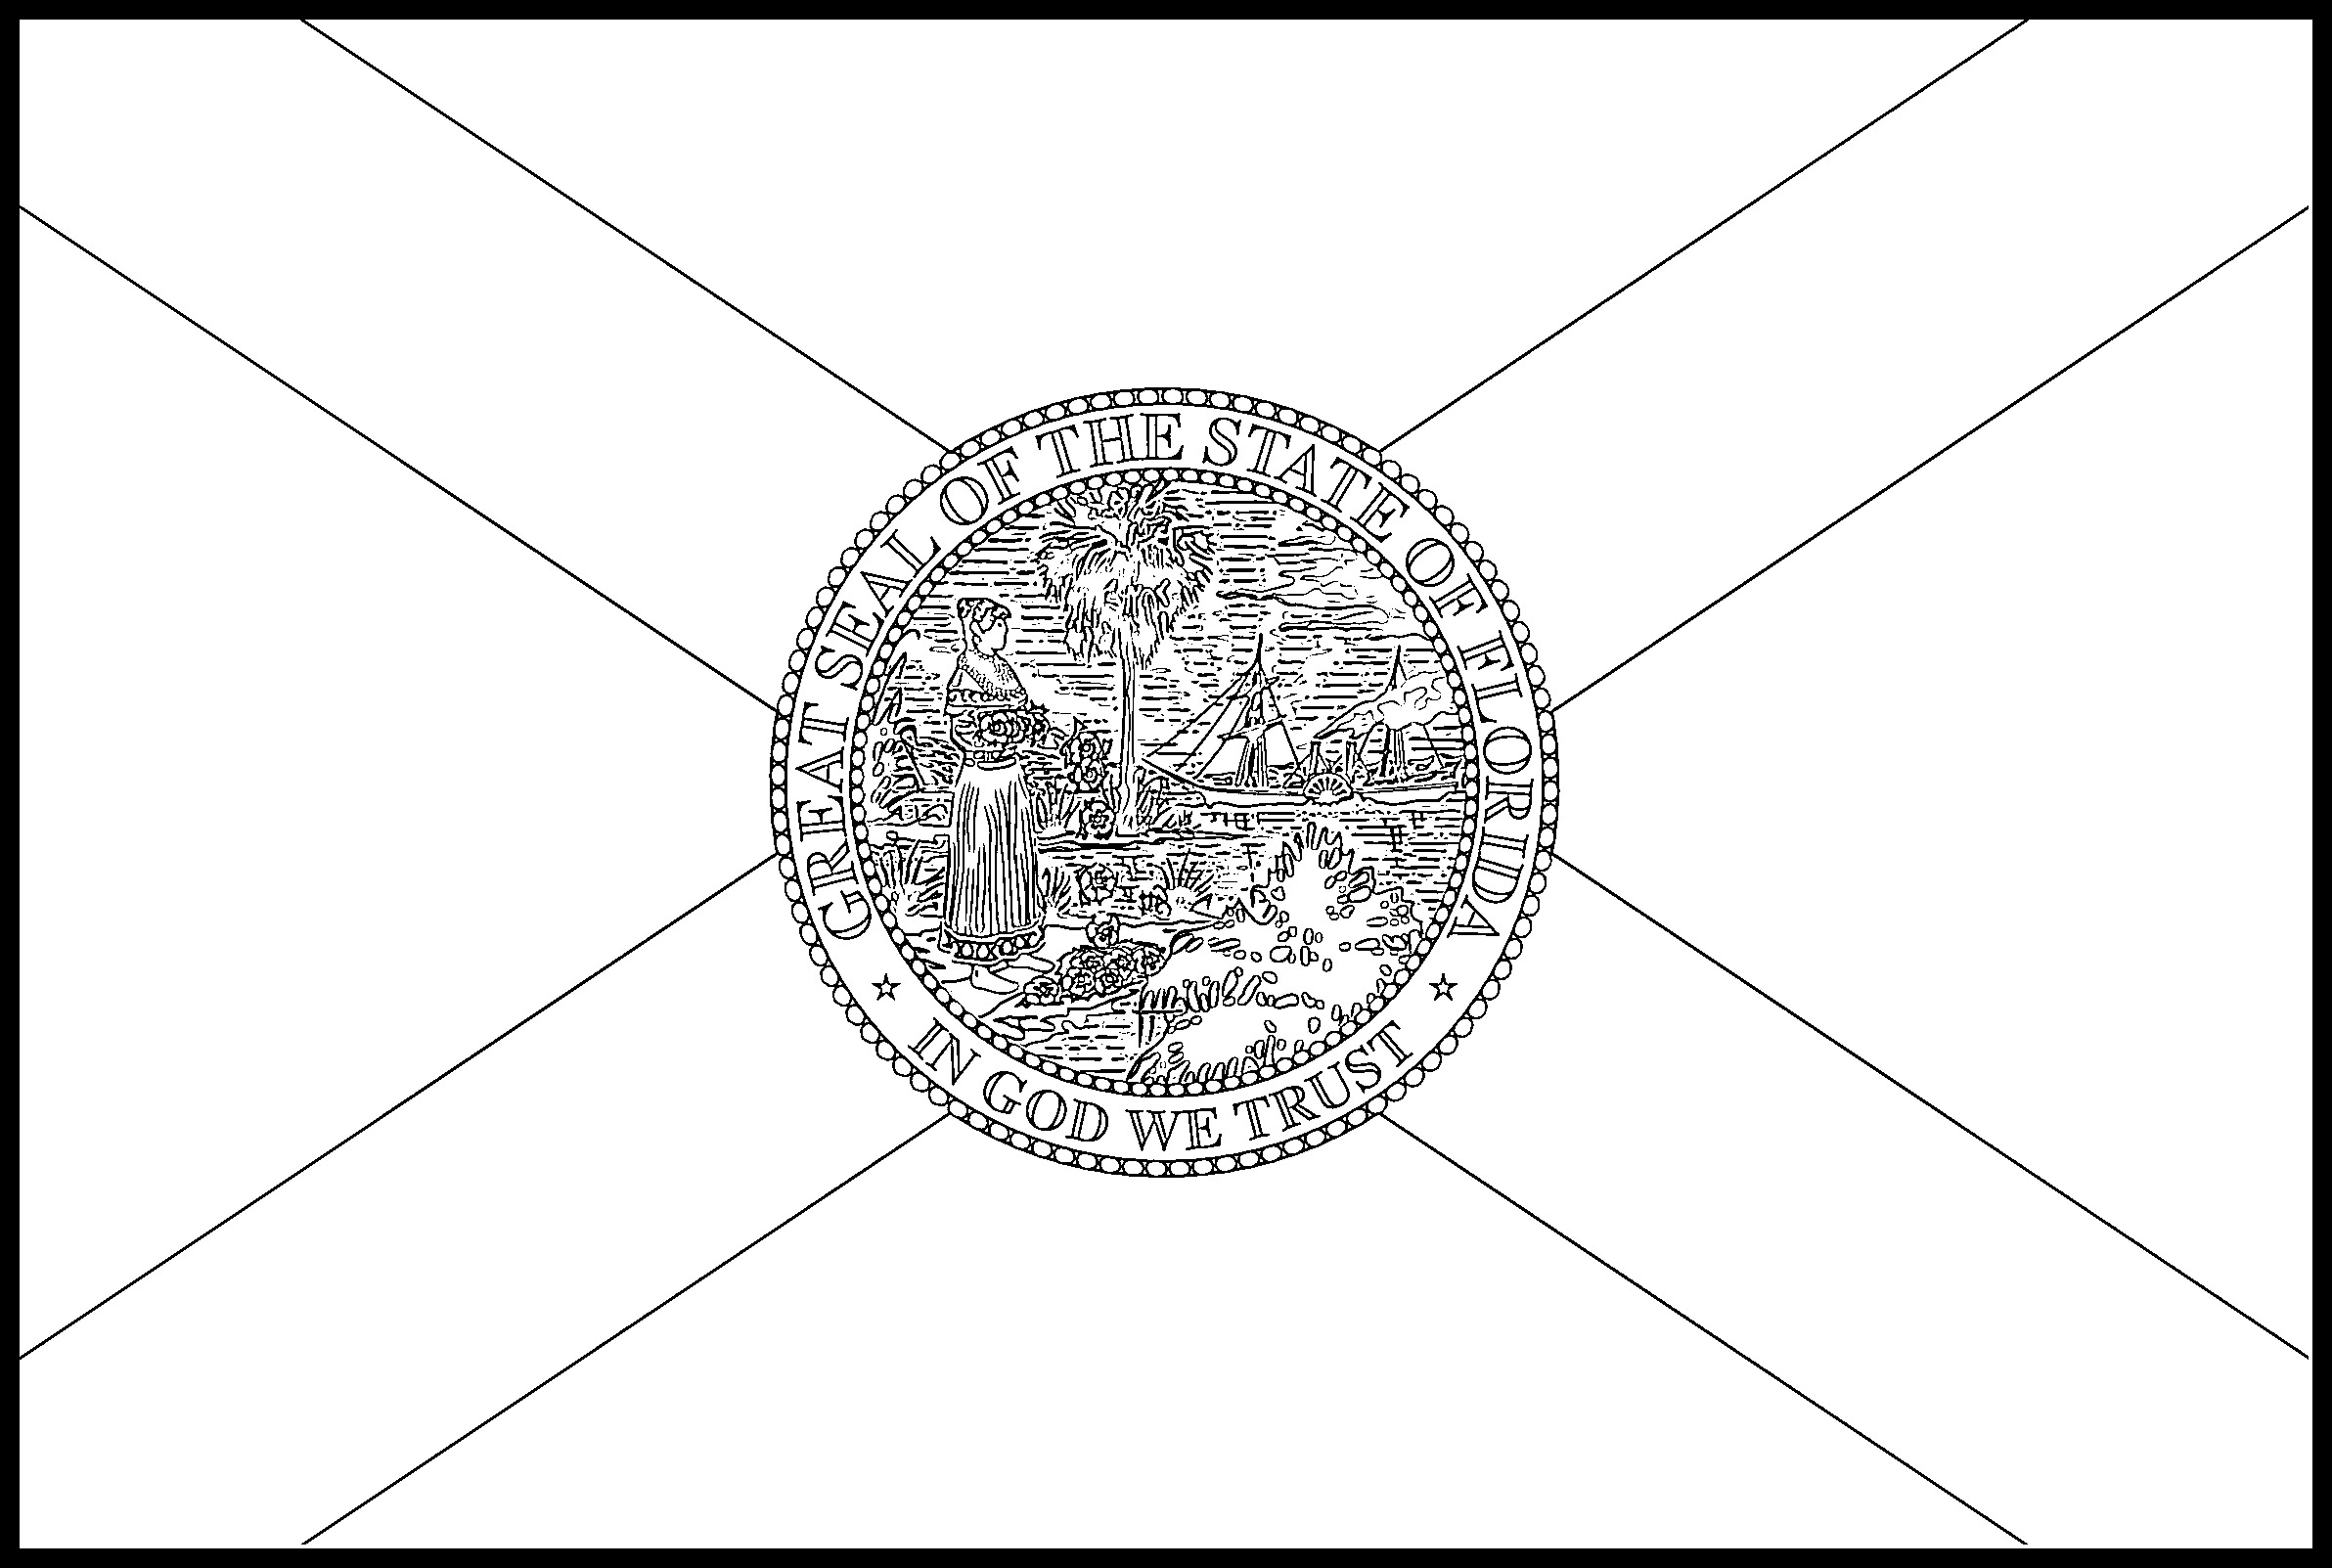 how to draw florida state flag florida flag coloring page state flag drawing flags web flag how draw state florida to